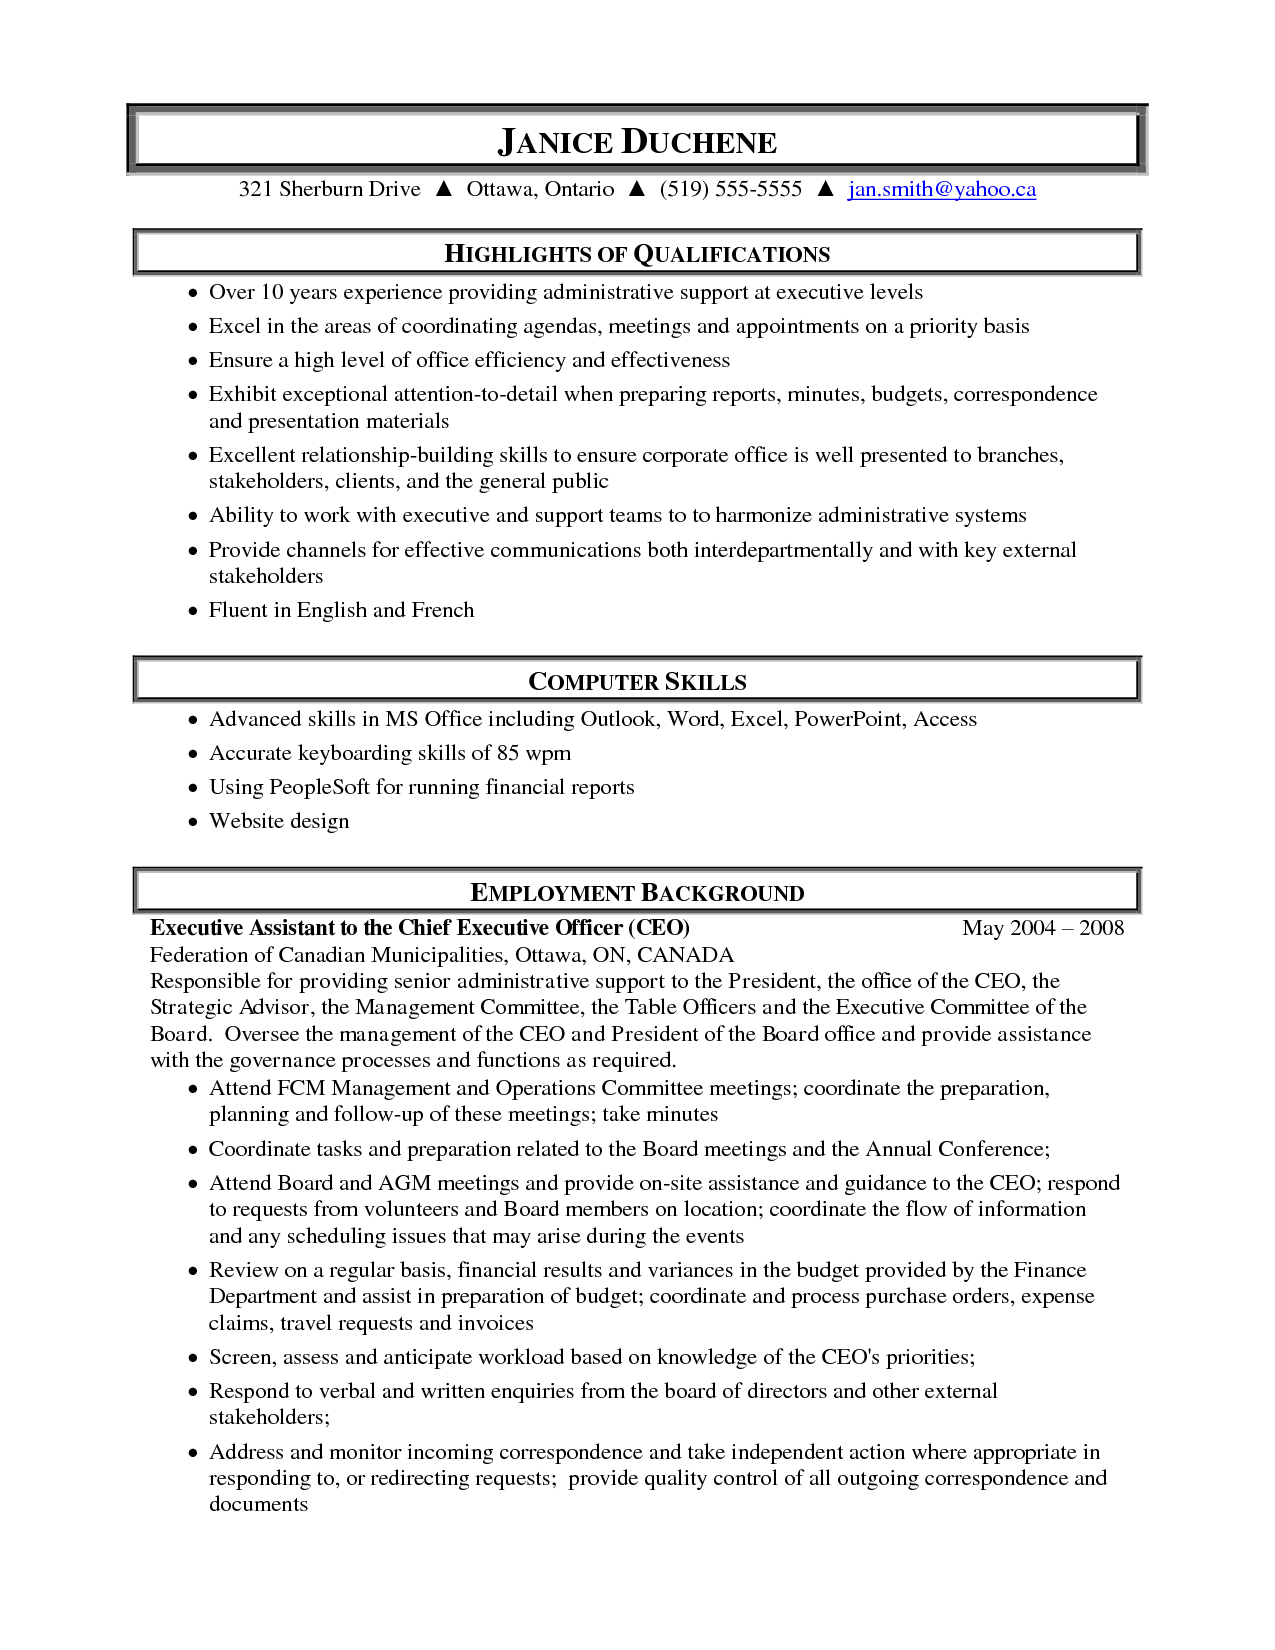 samplebusinessresume com page 17 of 37 business resume medical administrative assistant resume samples highlight of qualifications